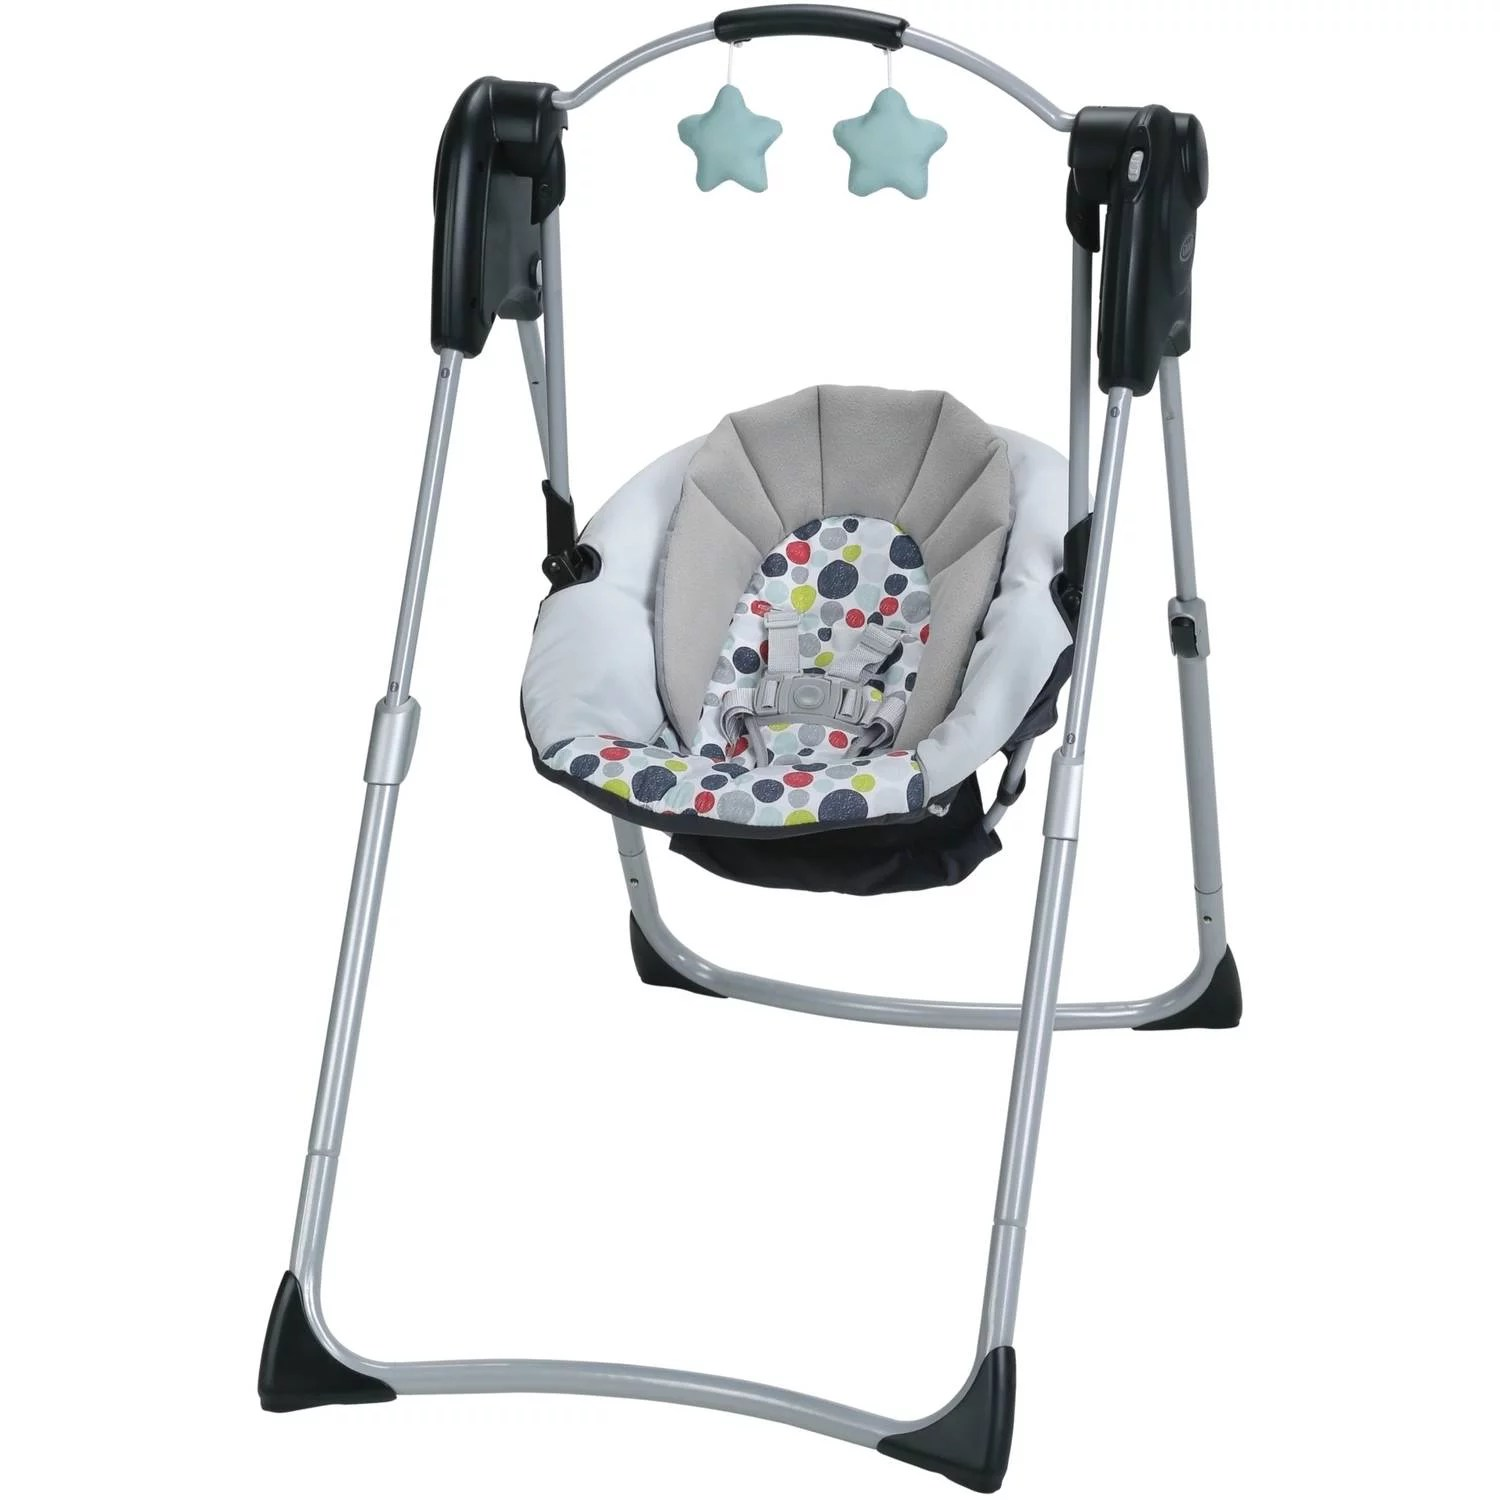 swing chair benefits lift for elderly graco slim spaces compact baby etcher walmart com